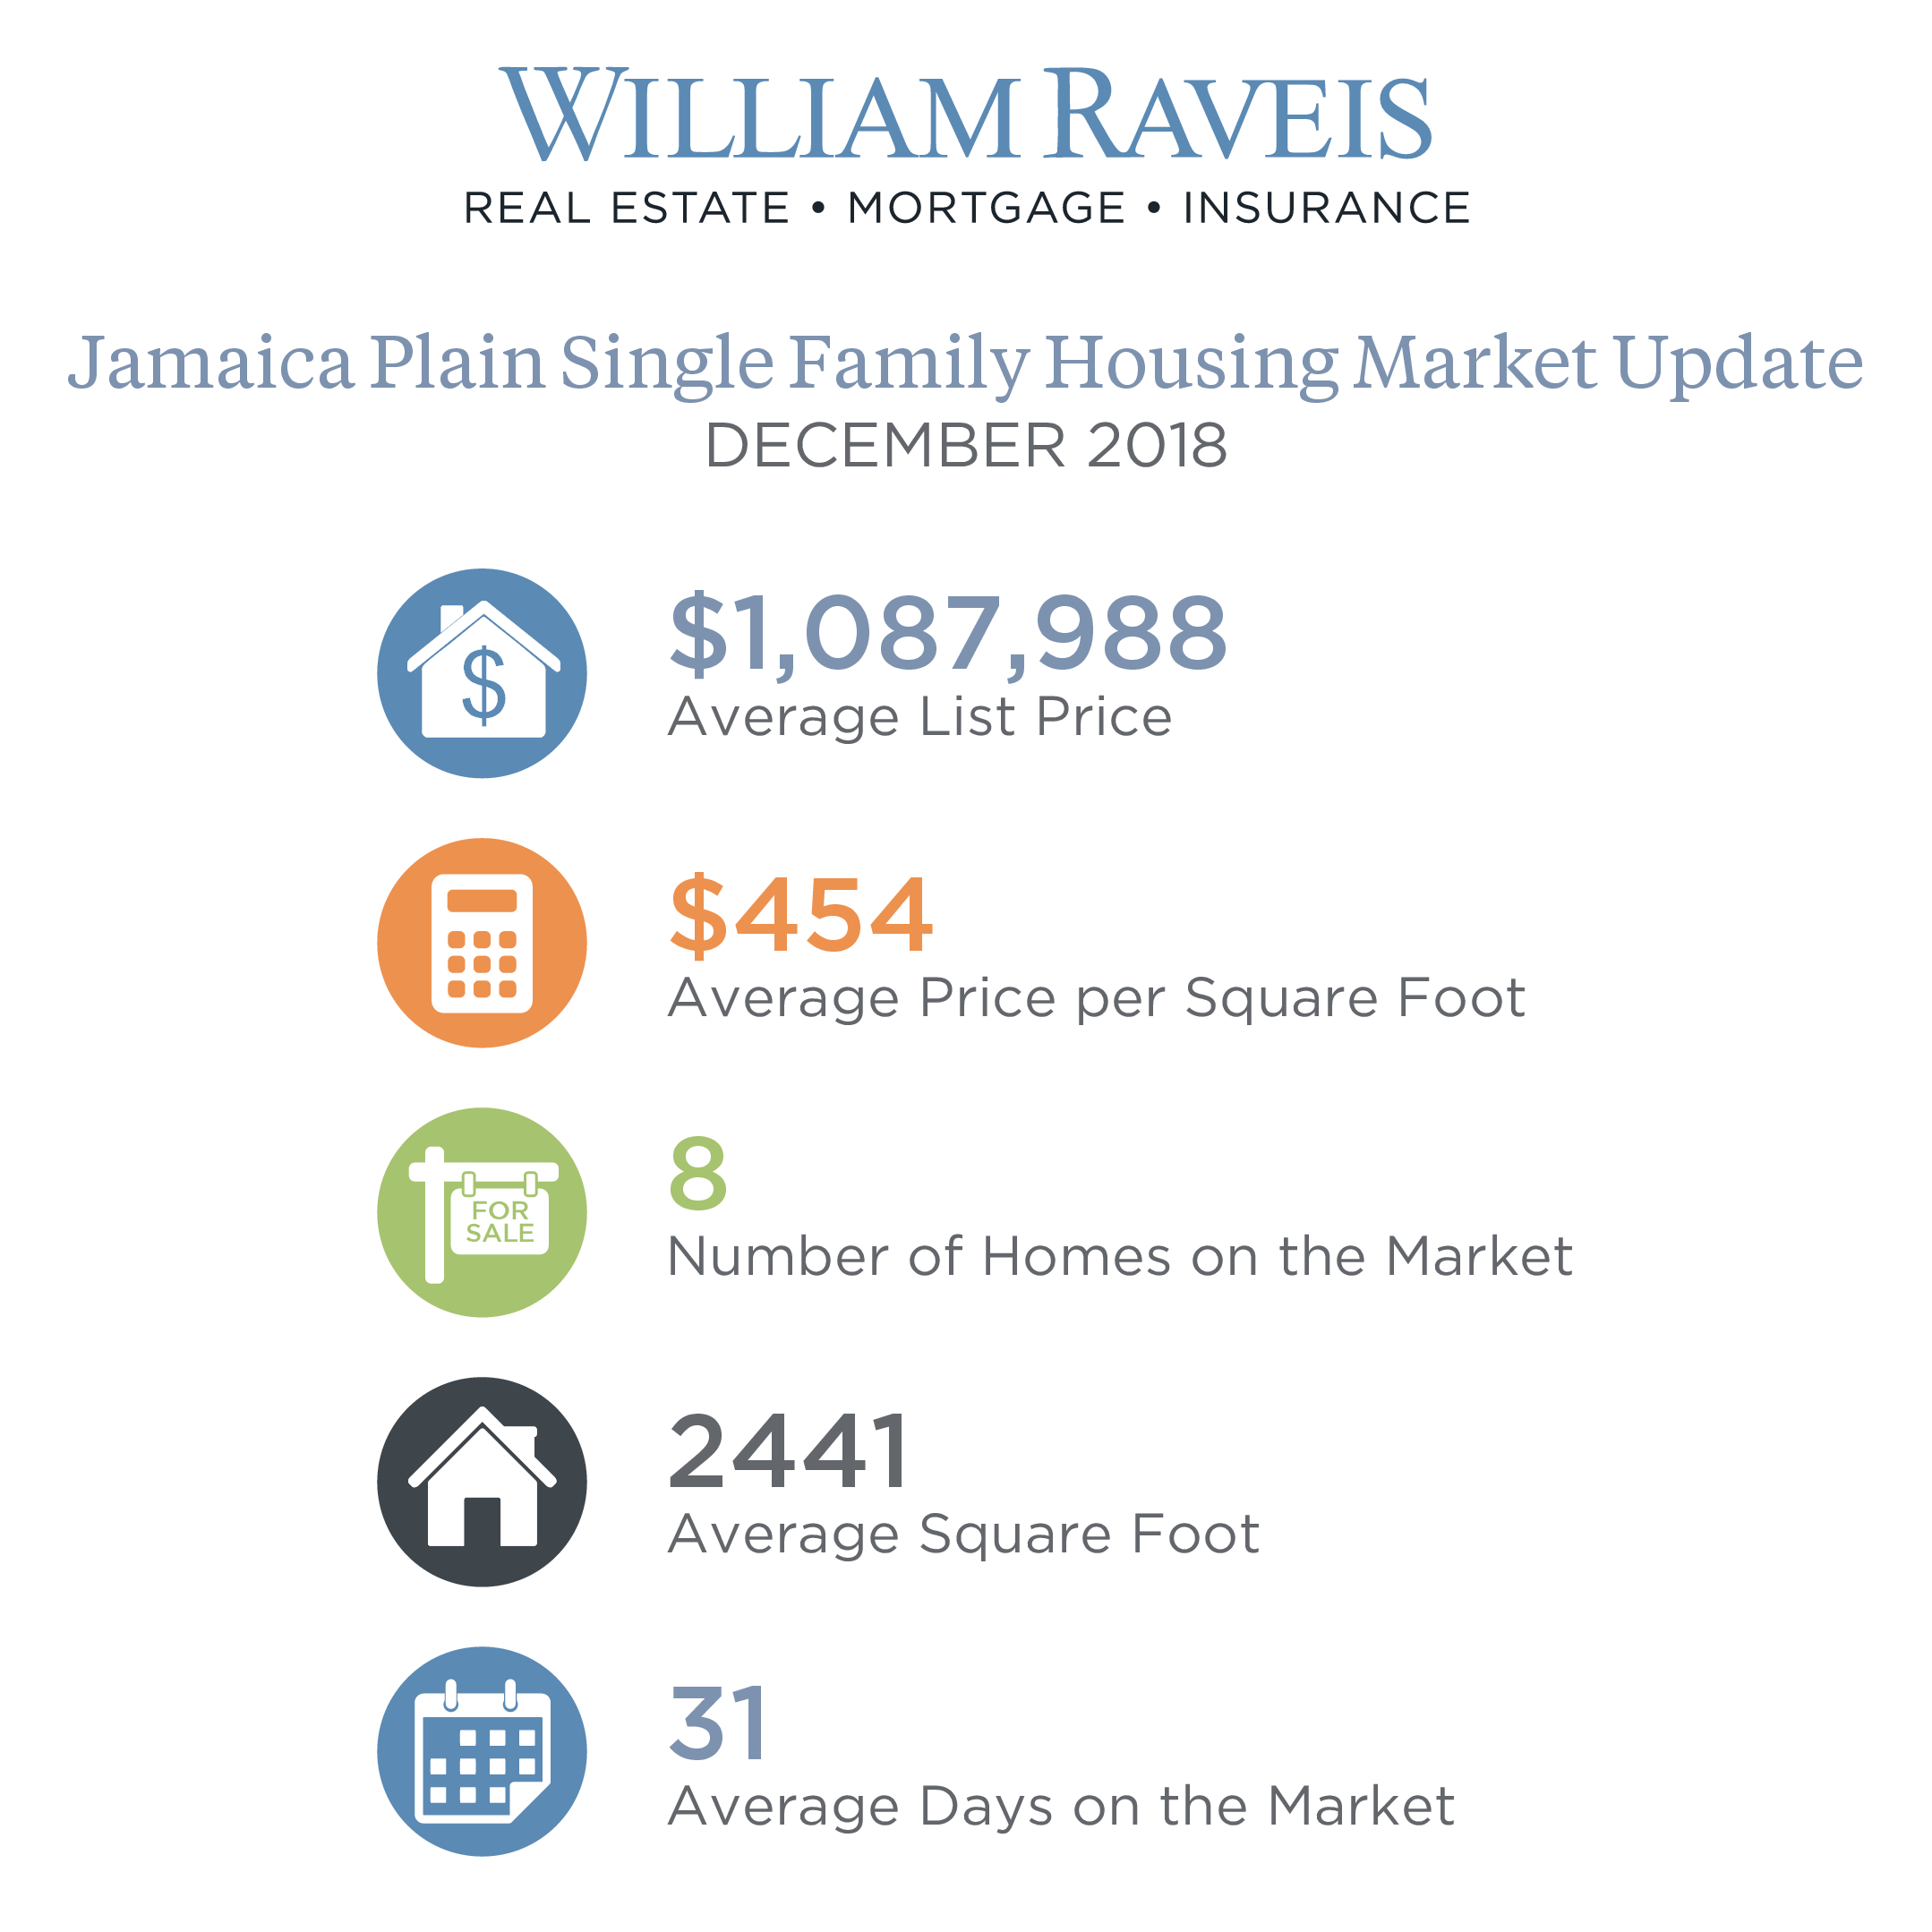 Jamaica Plain Single Family Housing Market Update Dec. 2018